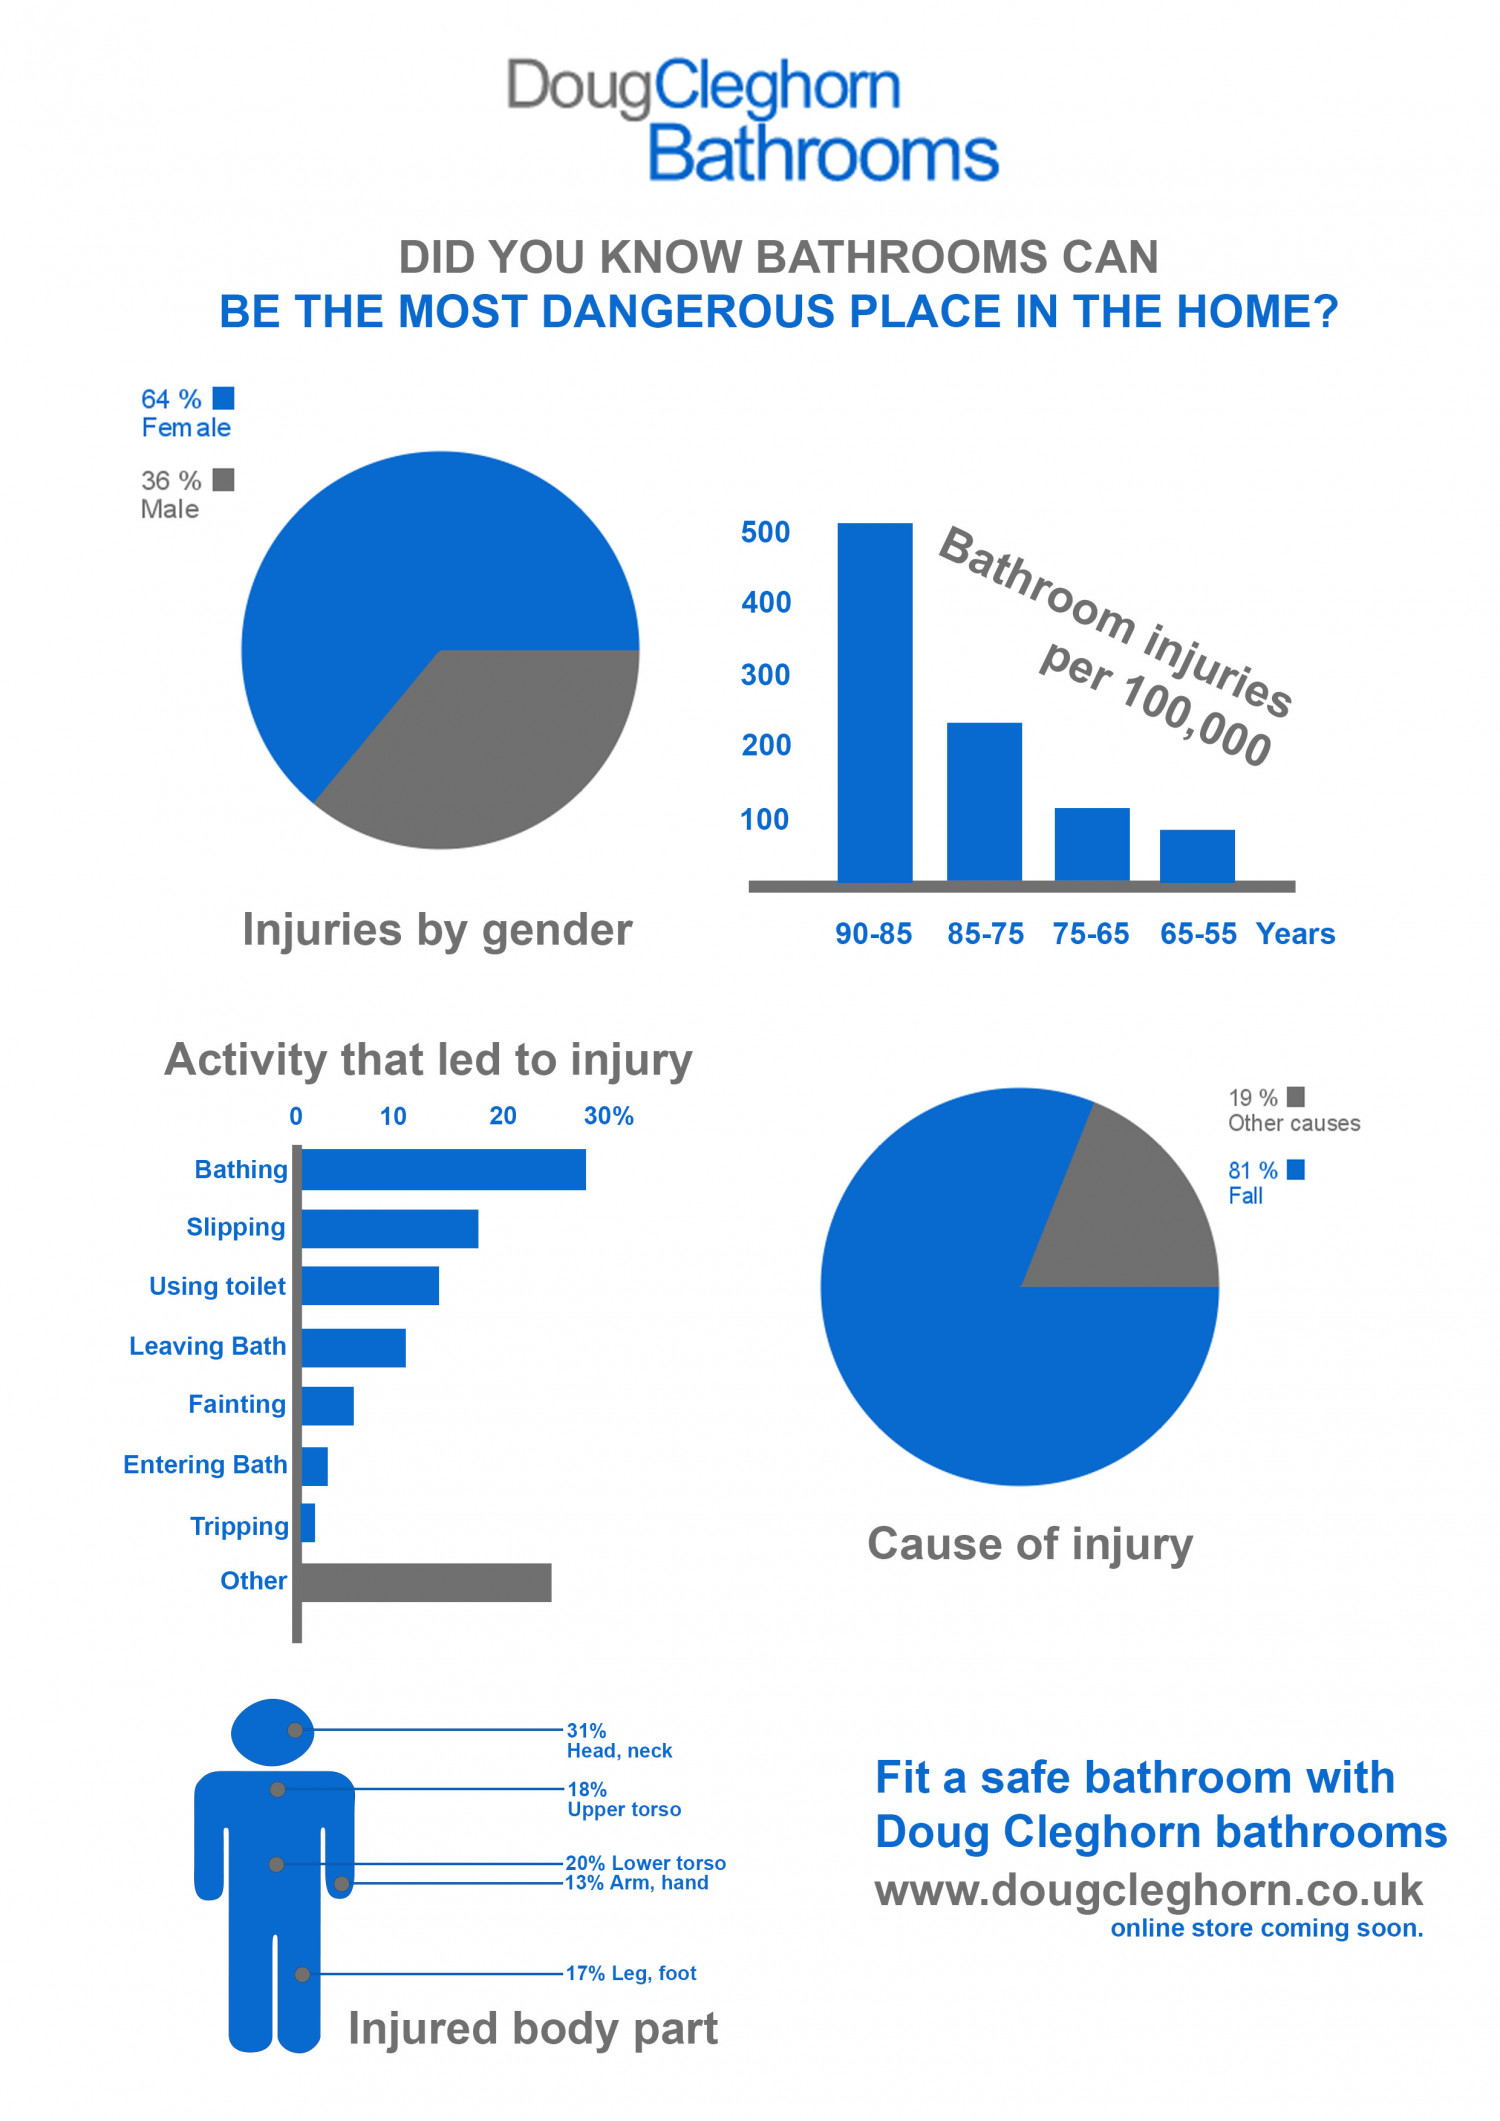 How Dangerous Is Your Bathroom? Infographic